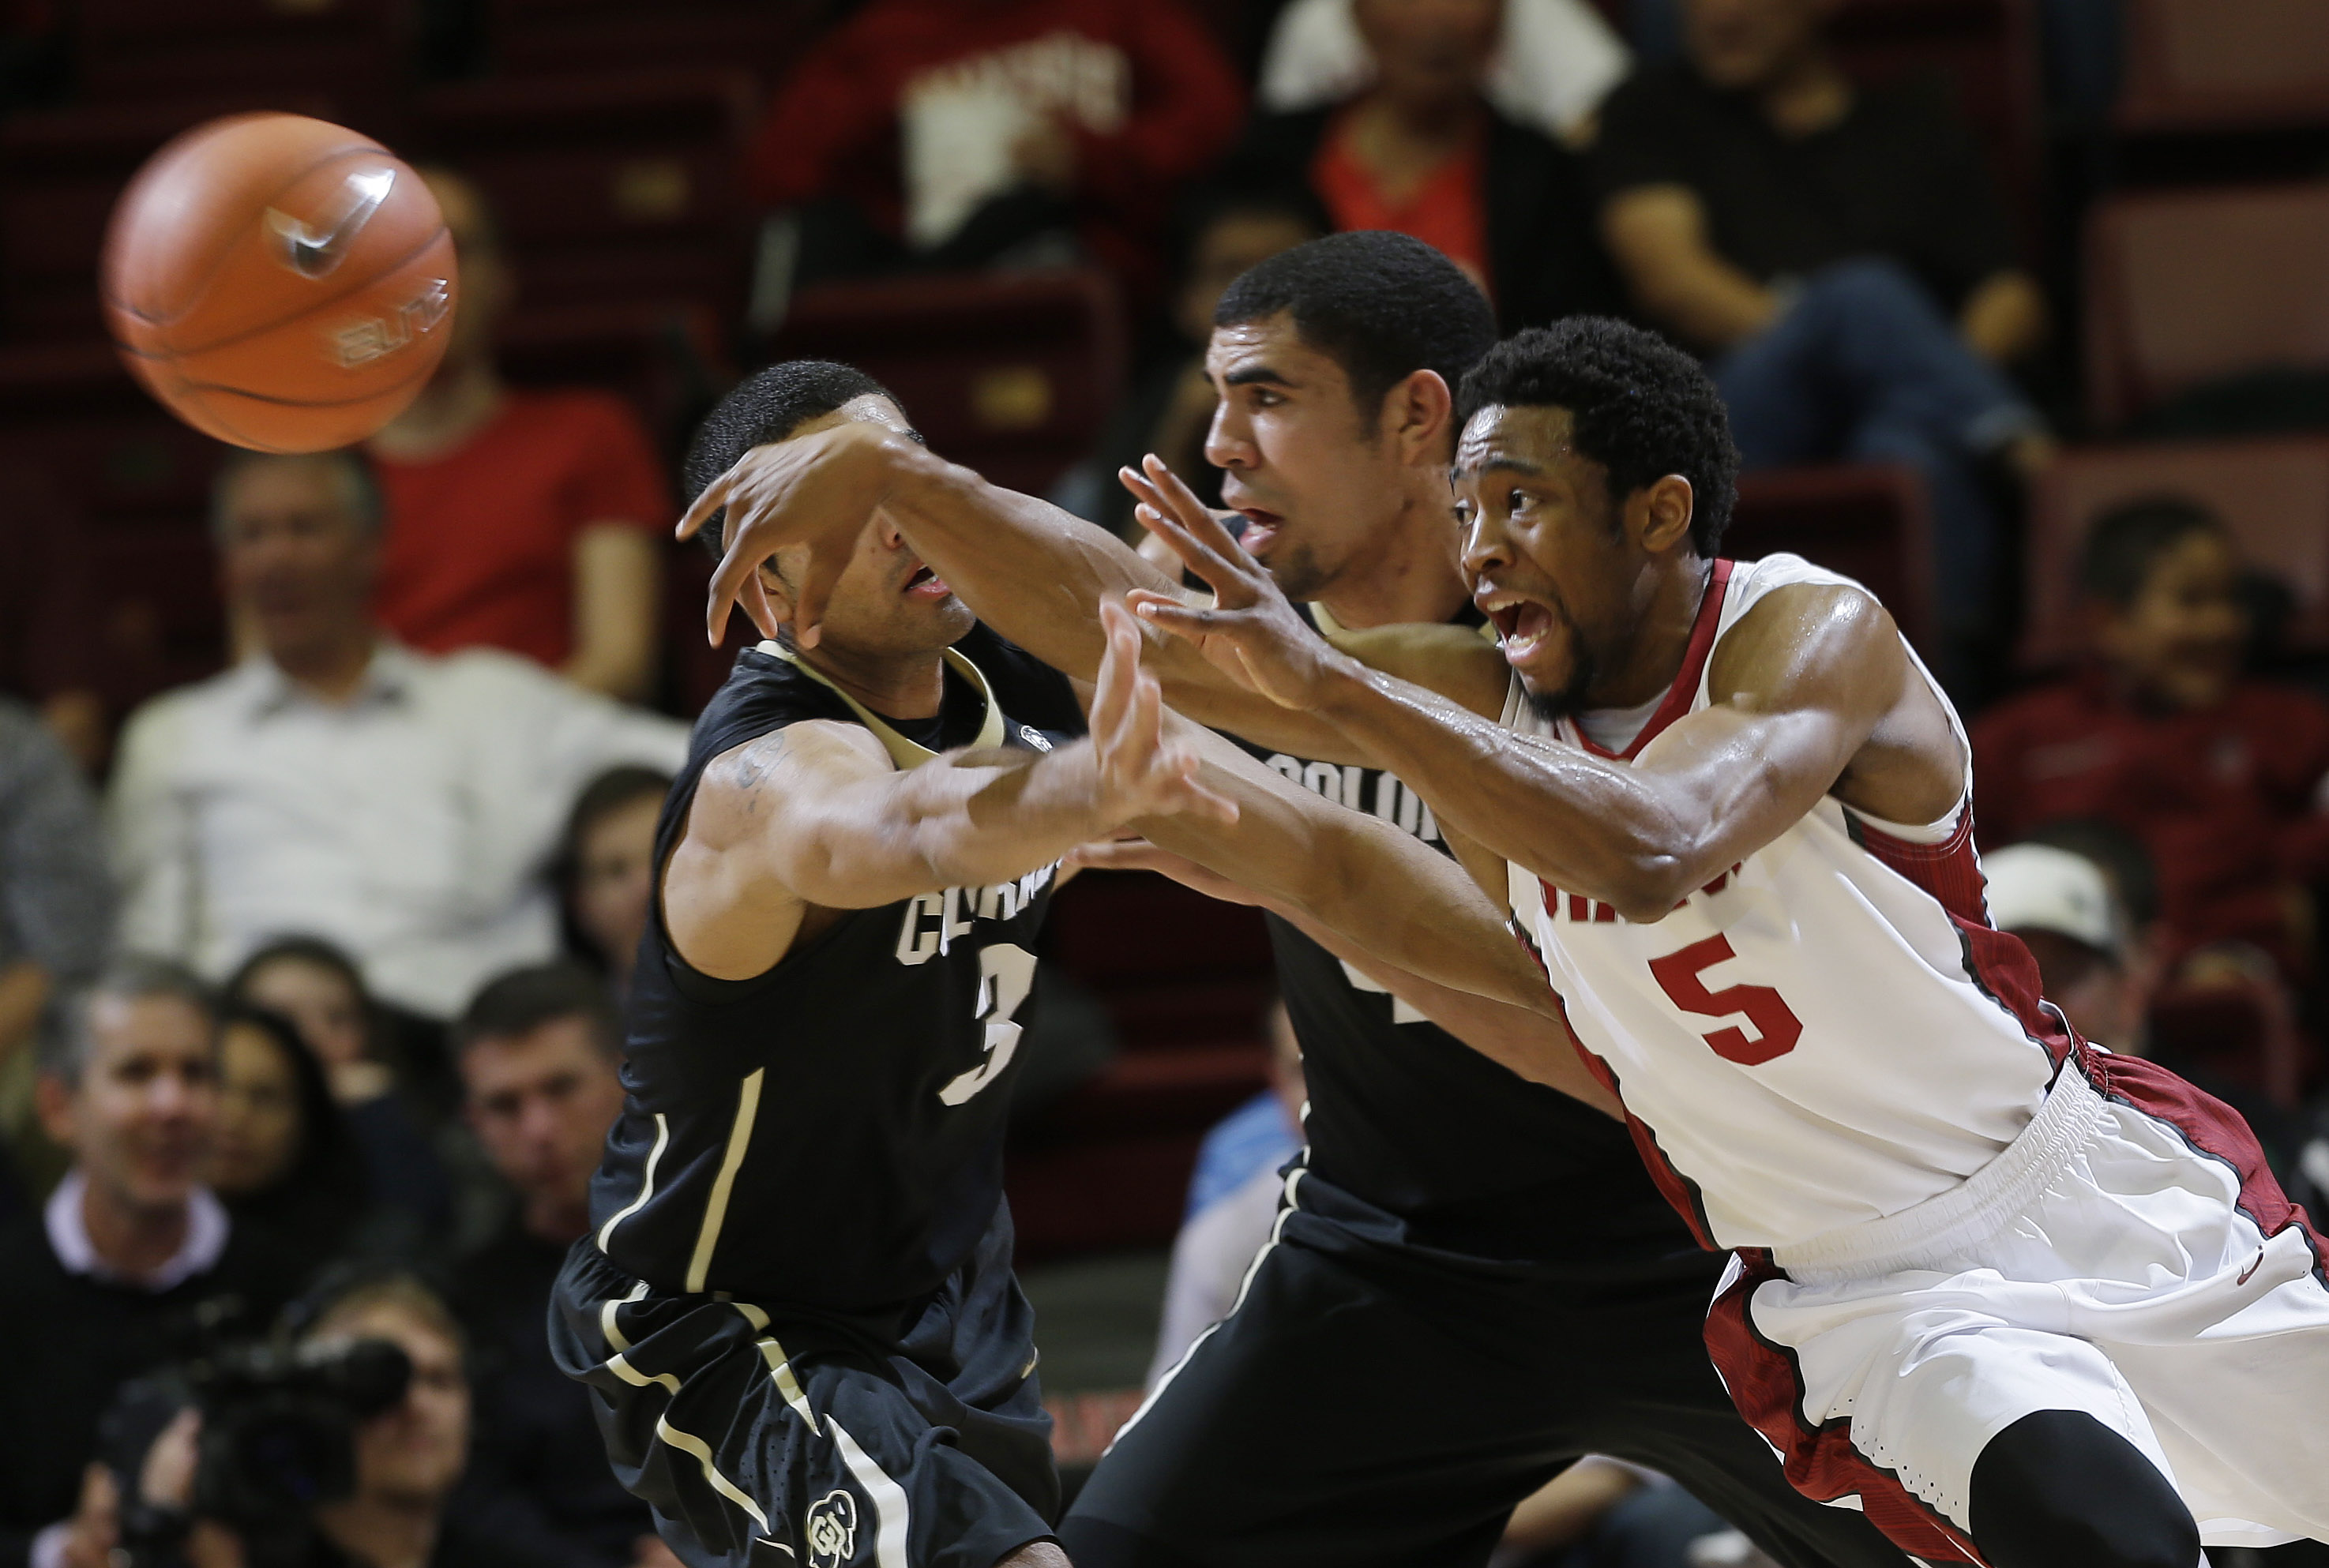 Colorado beats Stanford 59-56 for big Pac-12 win